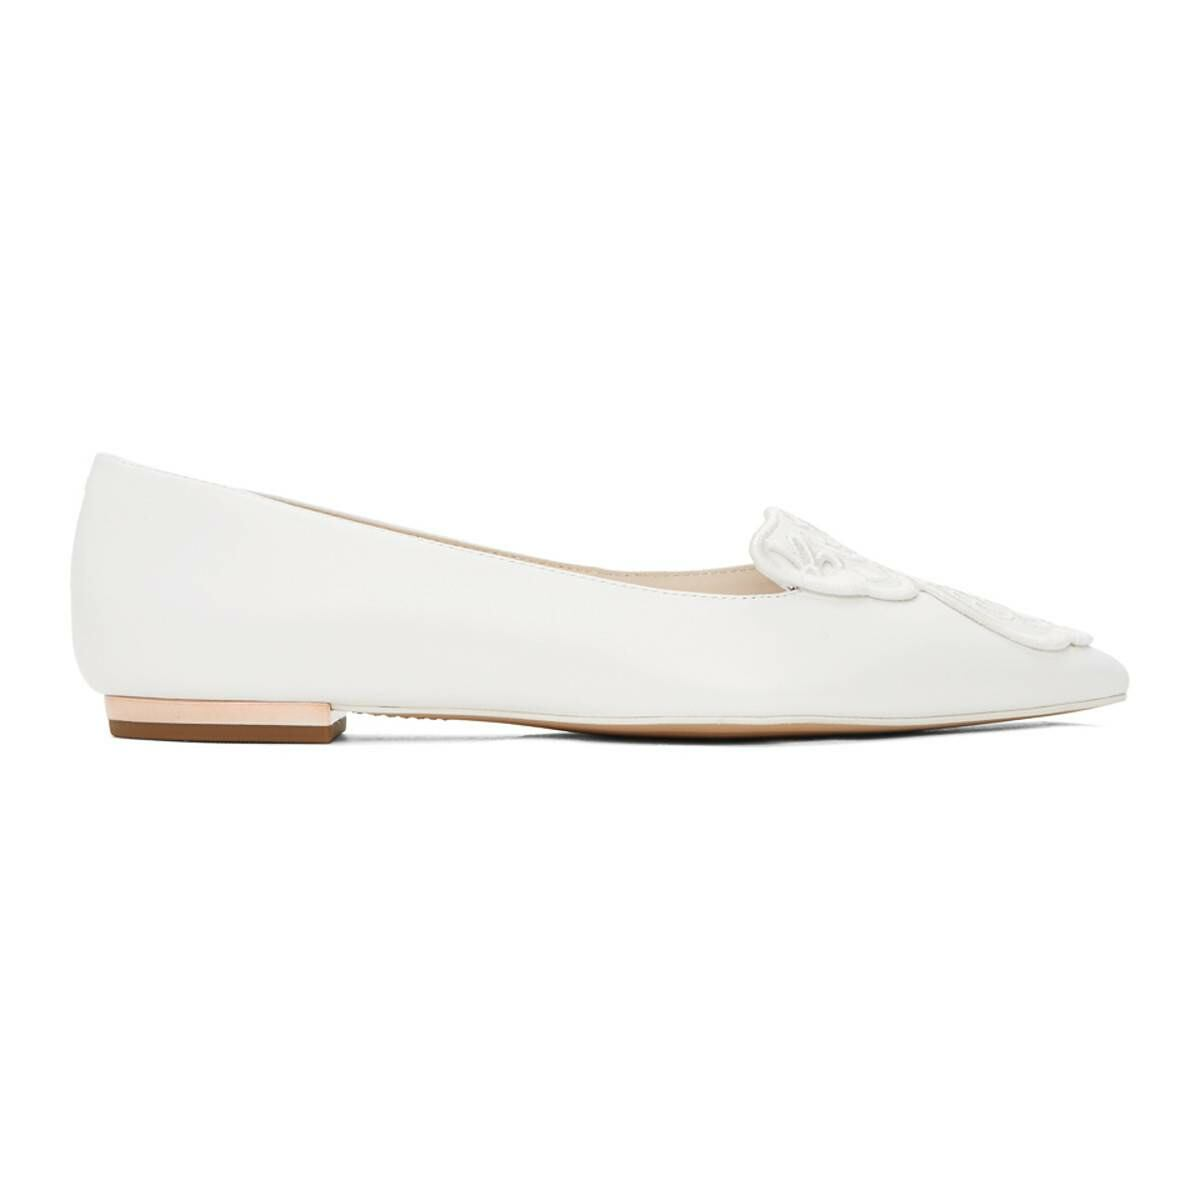 Sophia Webster White Bibi Butterfly Flats Ssense USA WOMEN Women SHOES Womens BALLERINAS